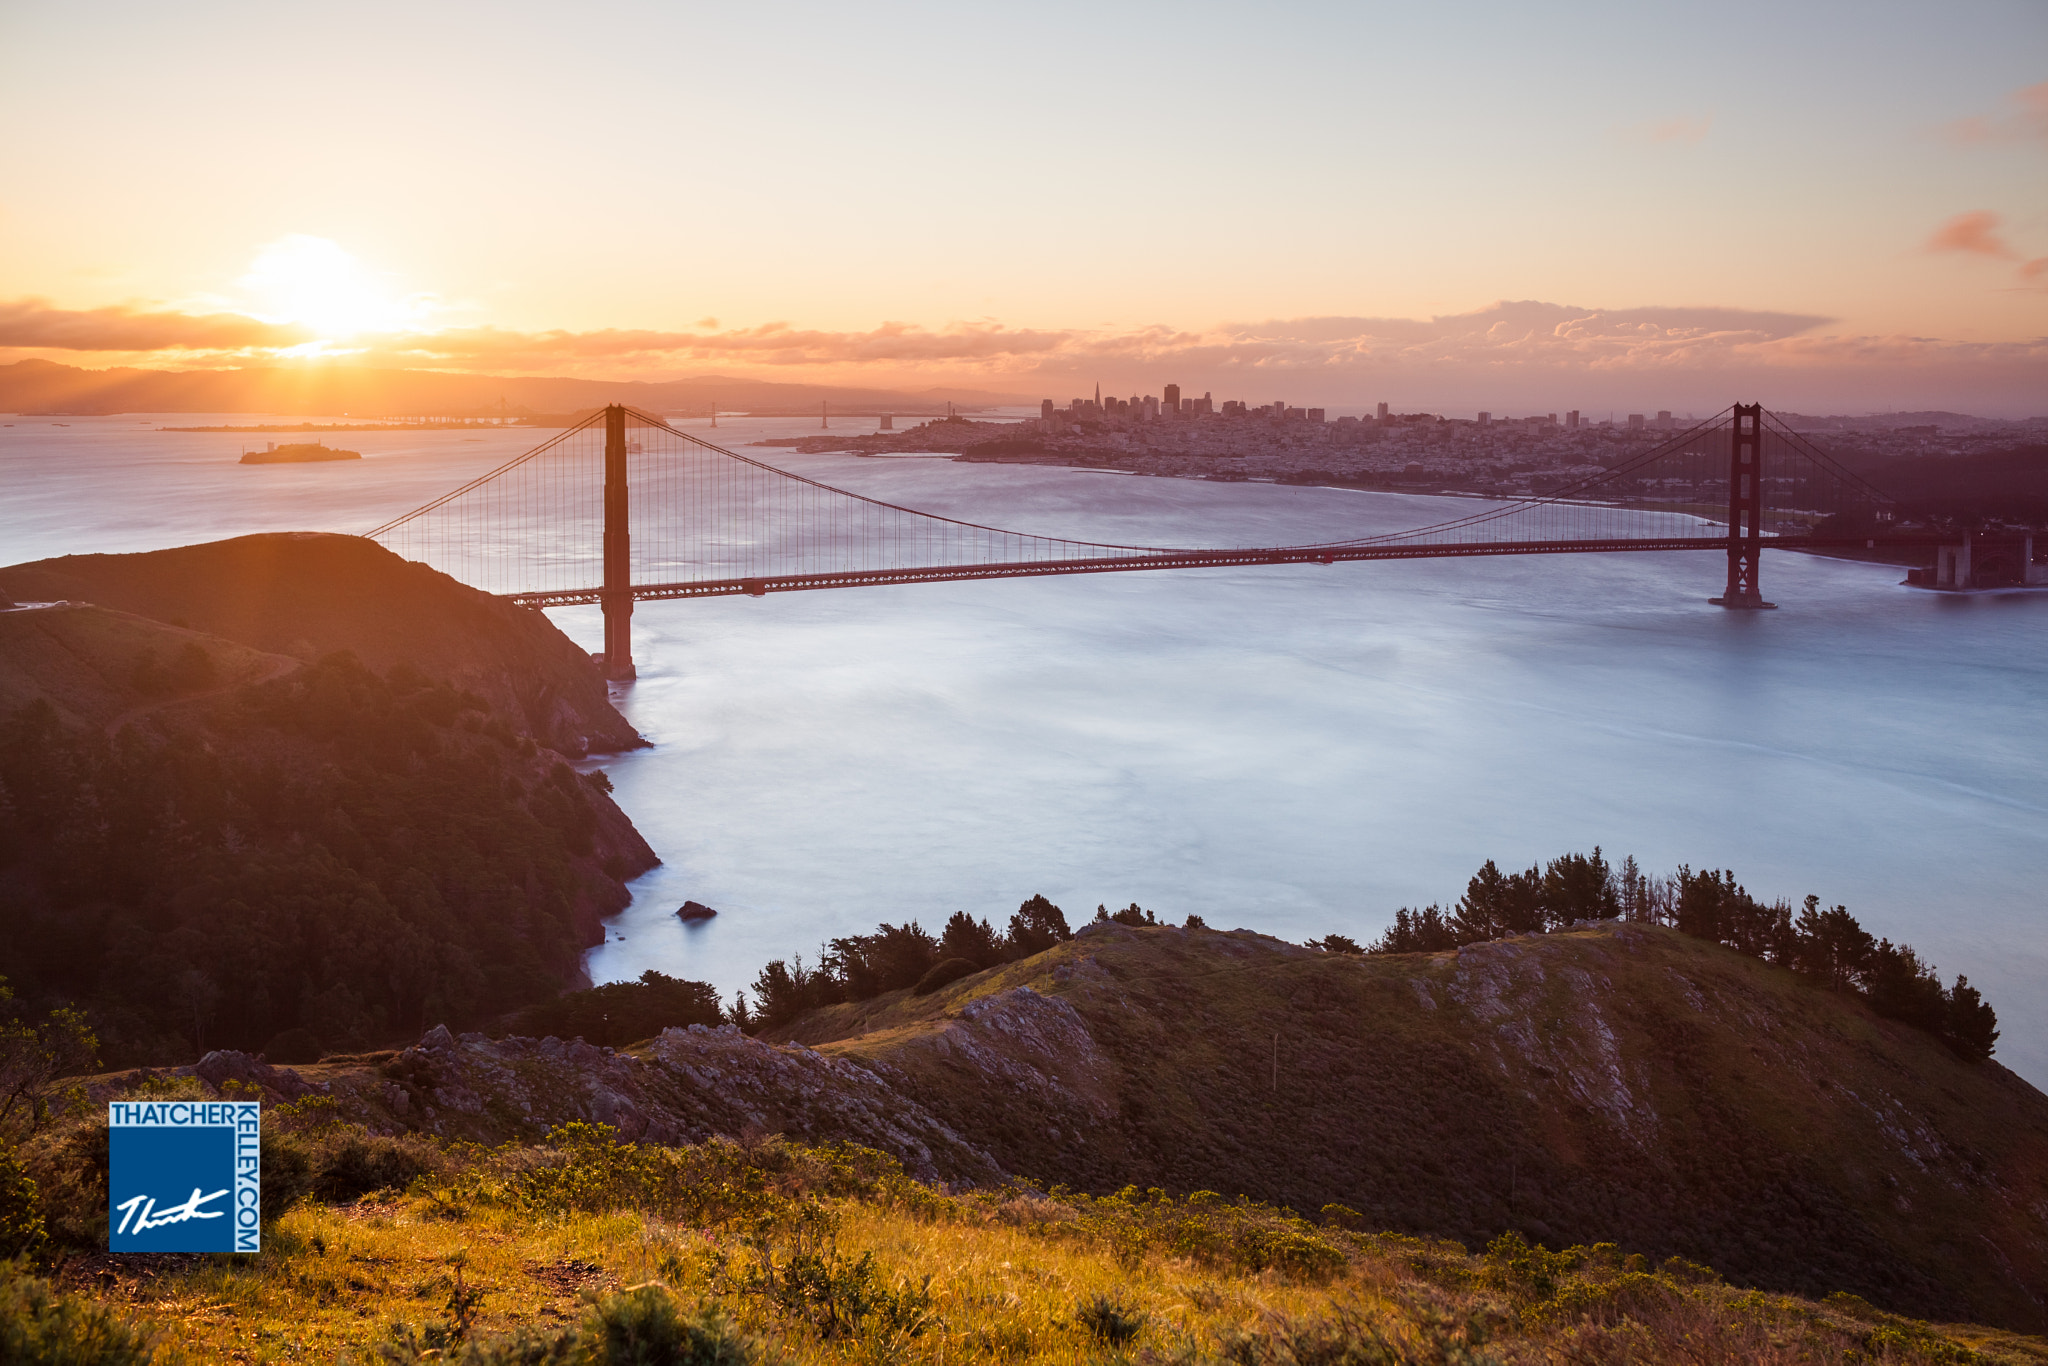 Photograph A Golden Morning by Thatcher Kelley on 500px